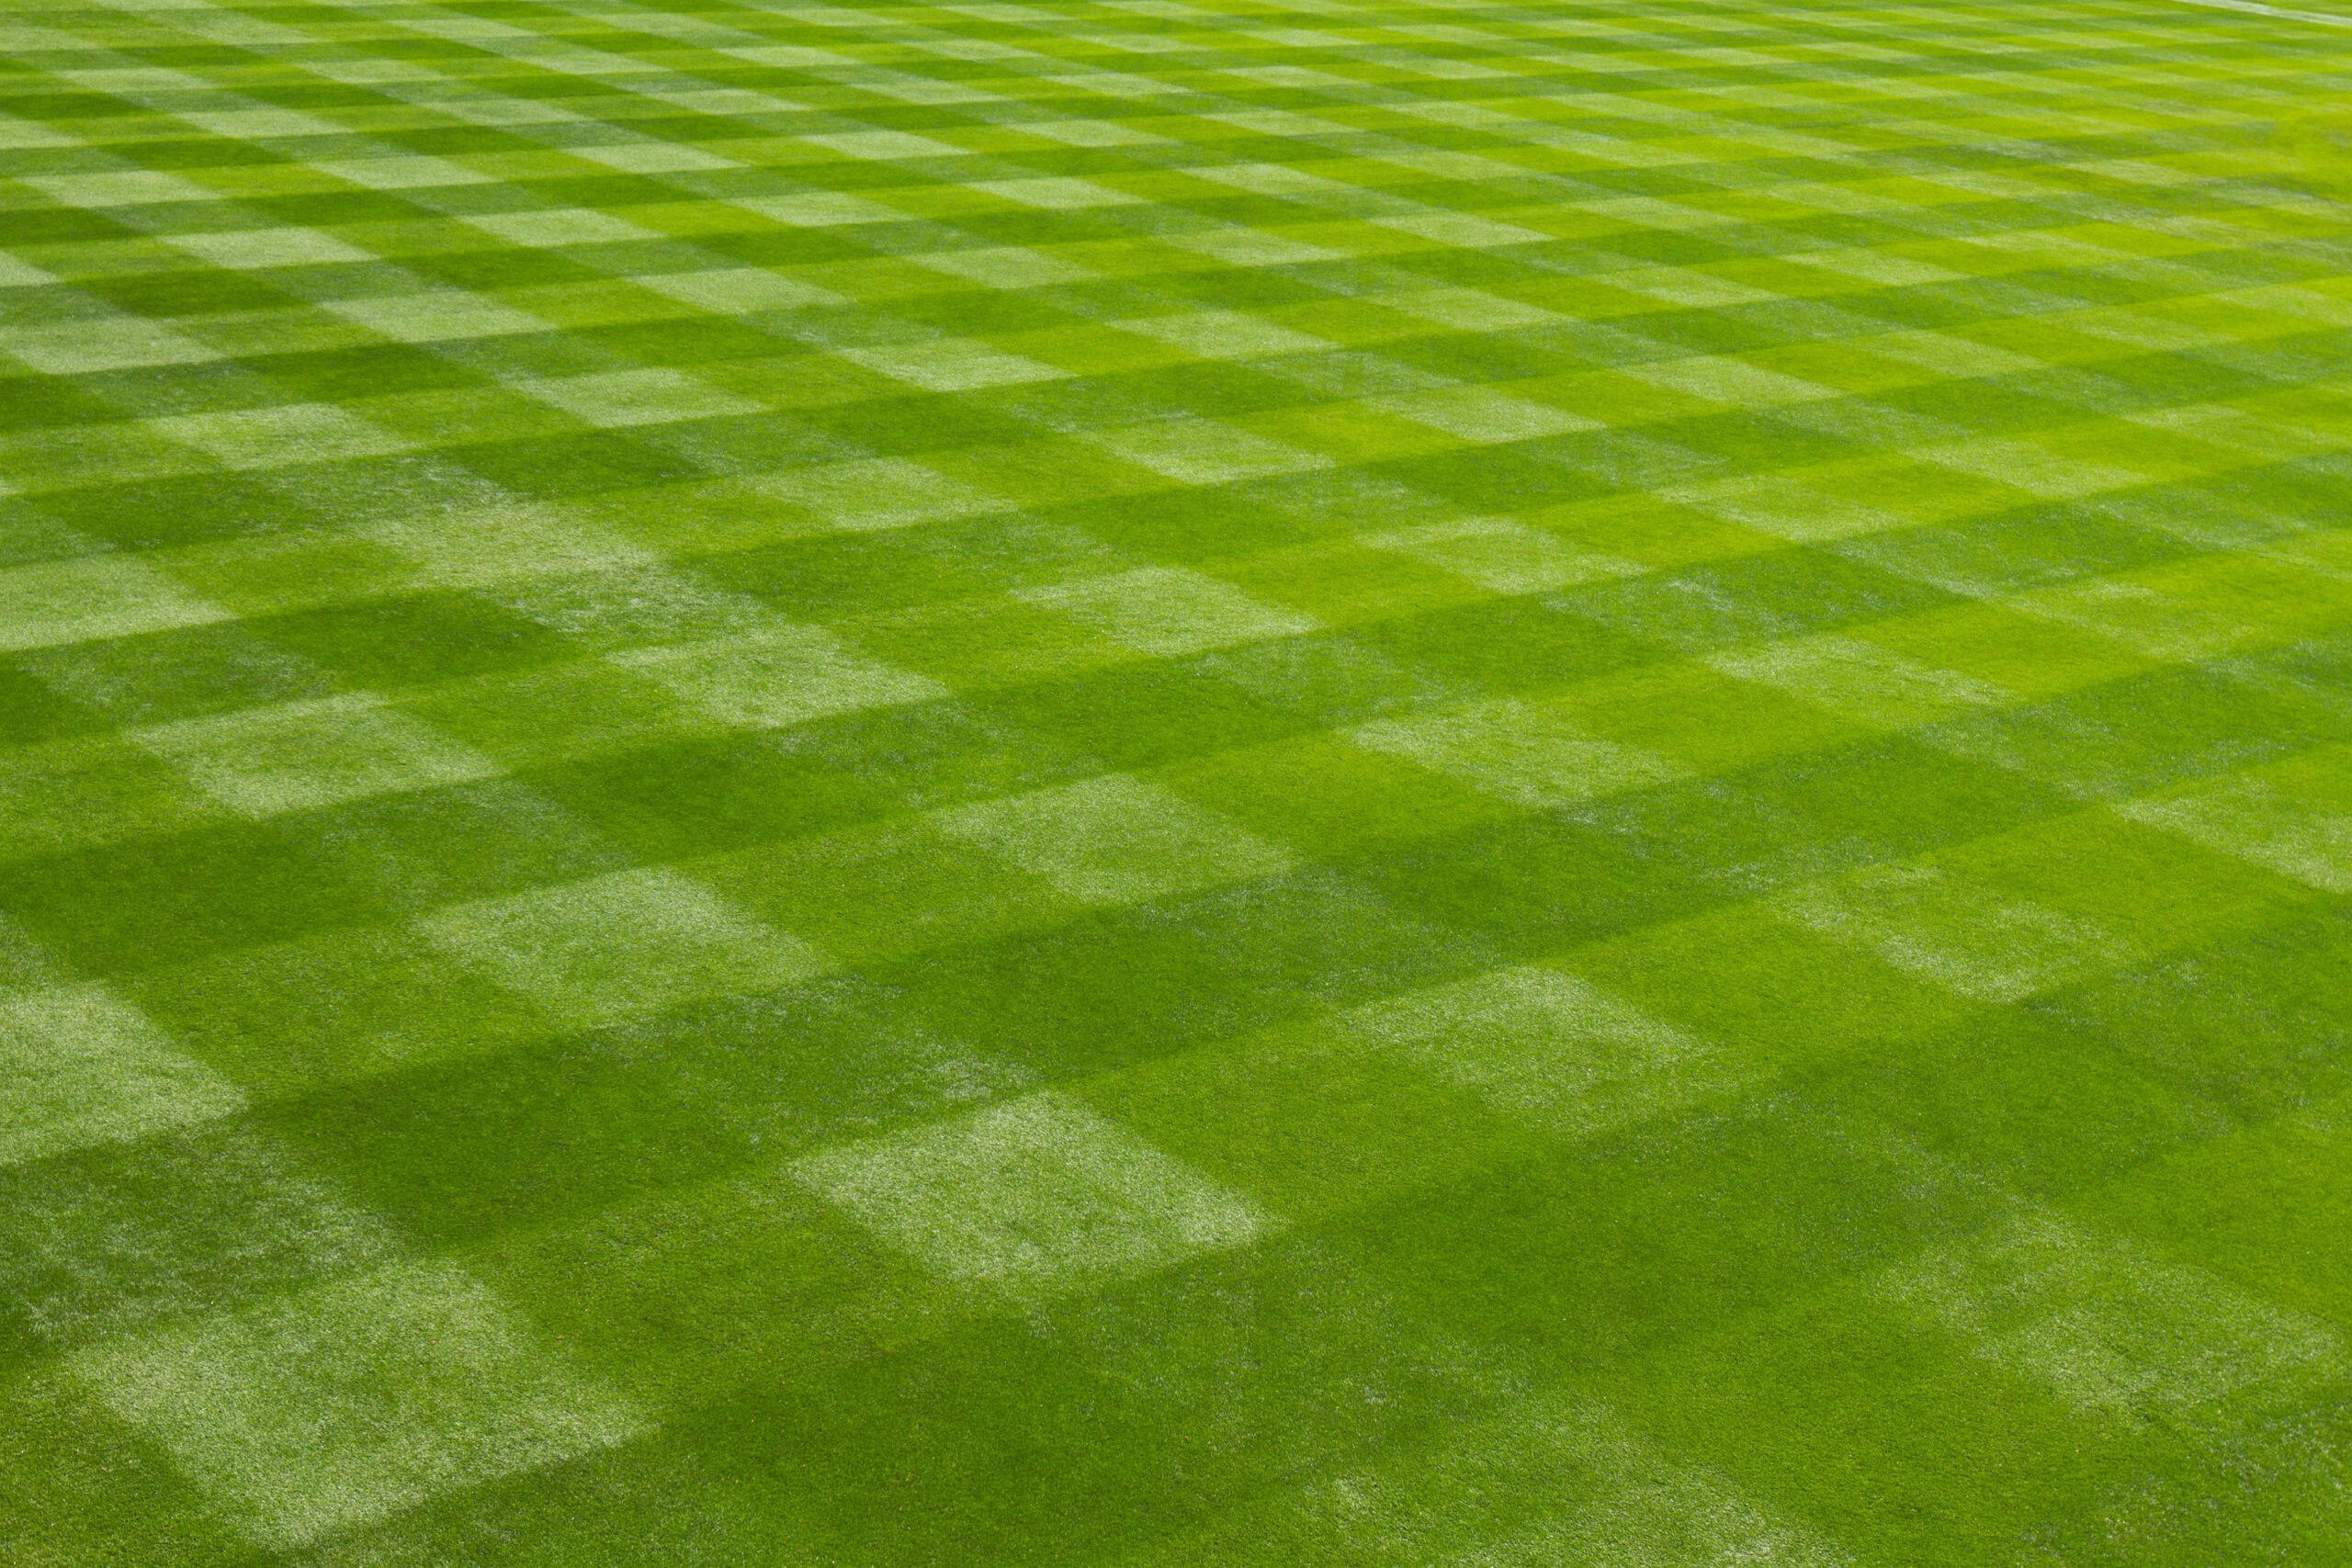 Perfect cross hatching marks a well managed grass field in a baseball stadium.